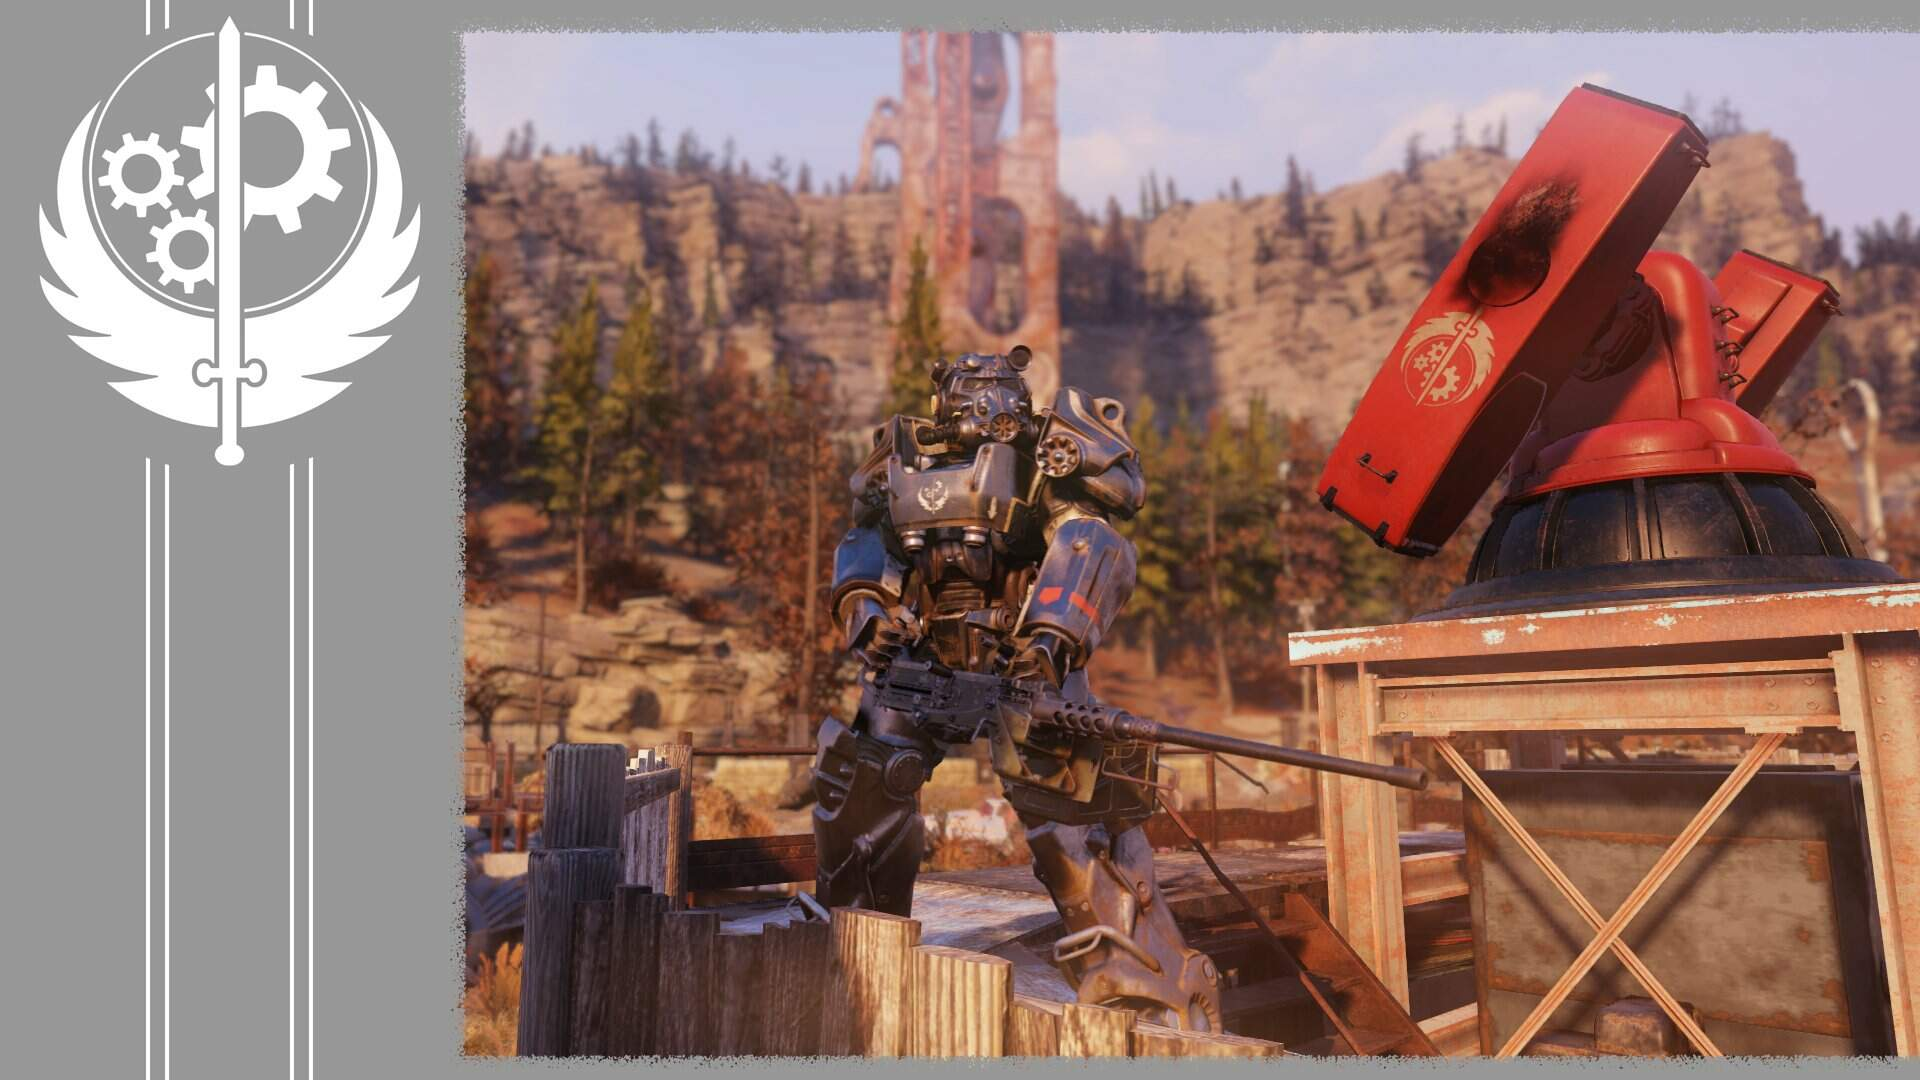 Fallout 76 Factions - Factions List, Locations, Can You Join Factions?